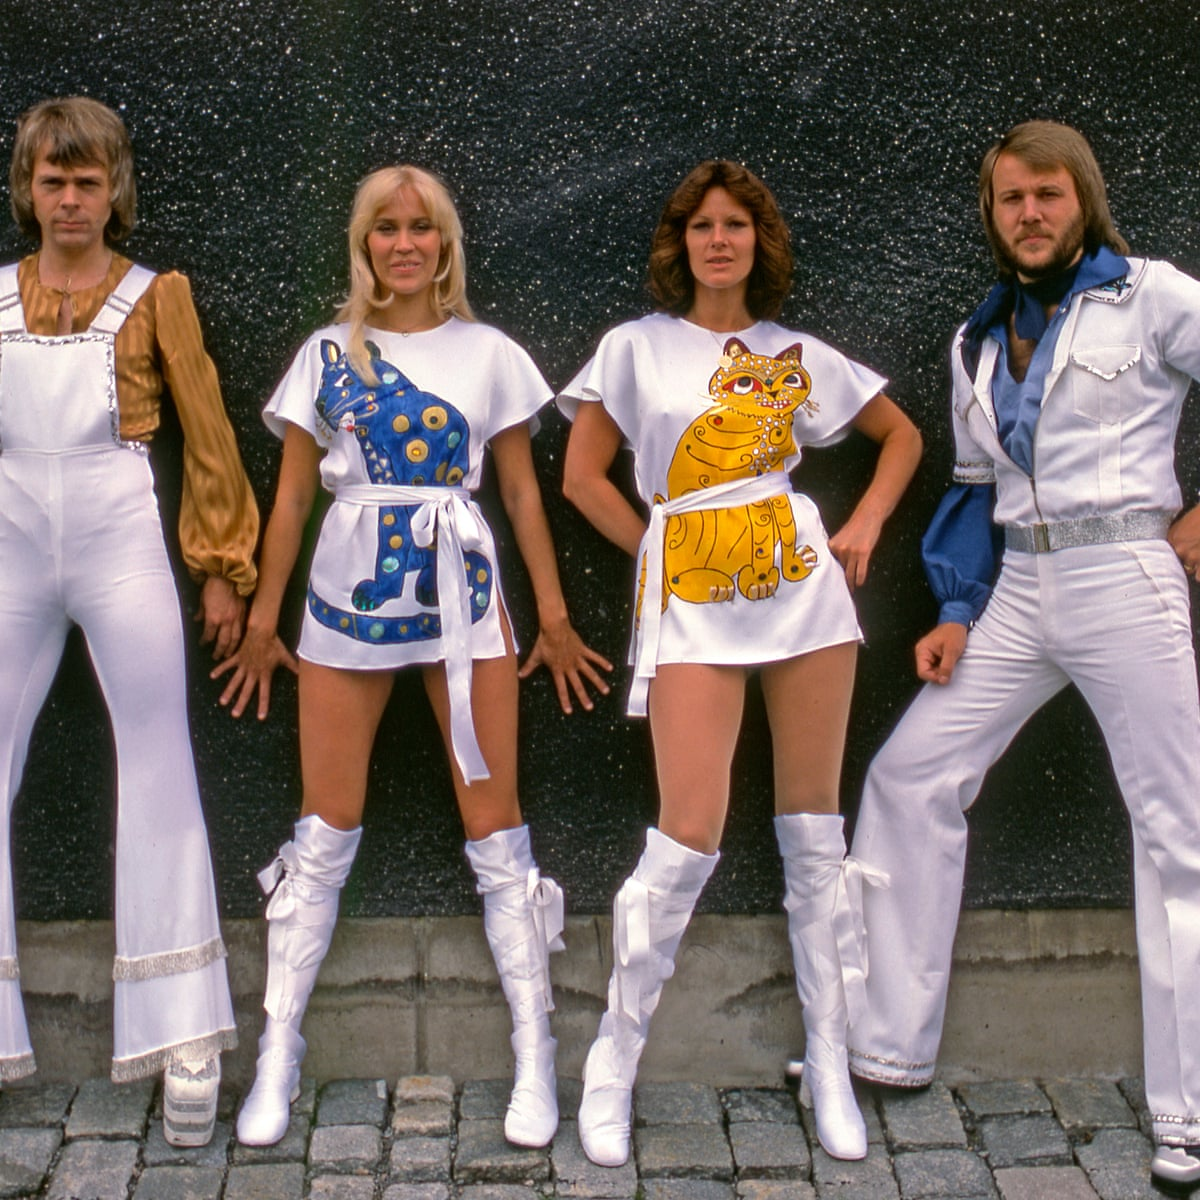 Abba announce first new songs for 35 years   Music   The Guardian